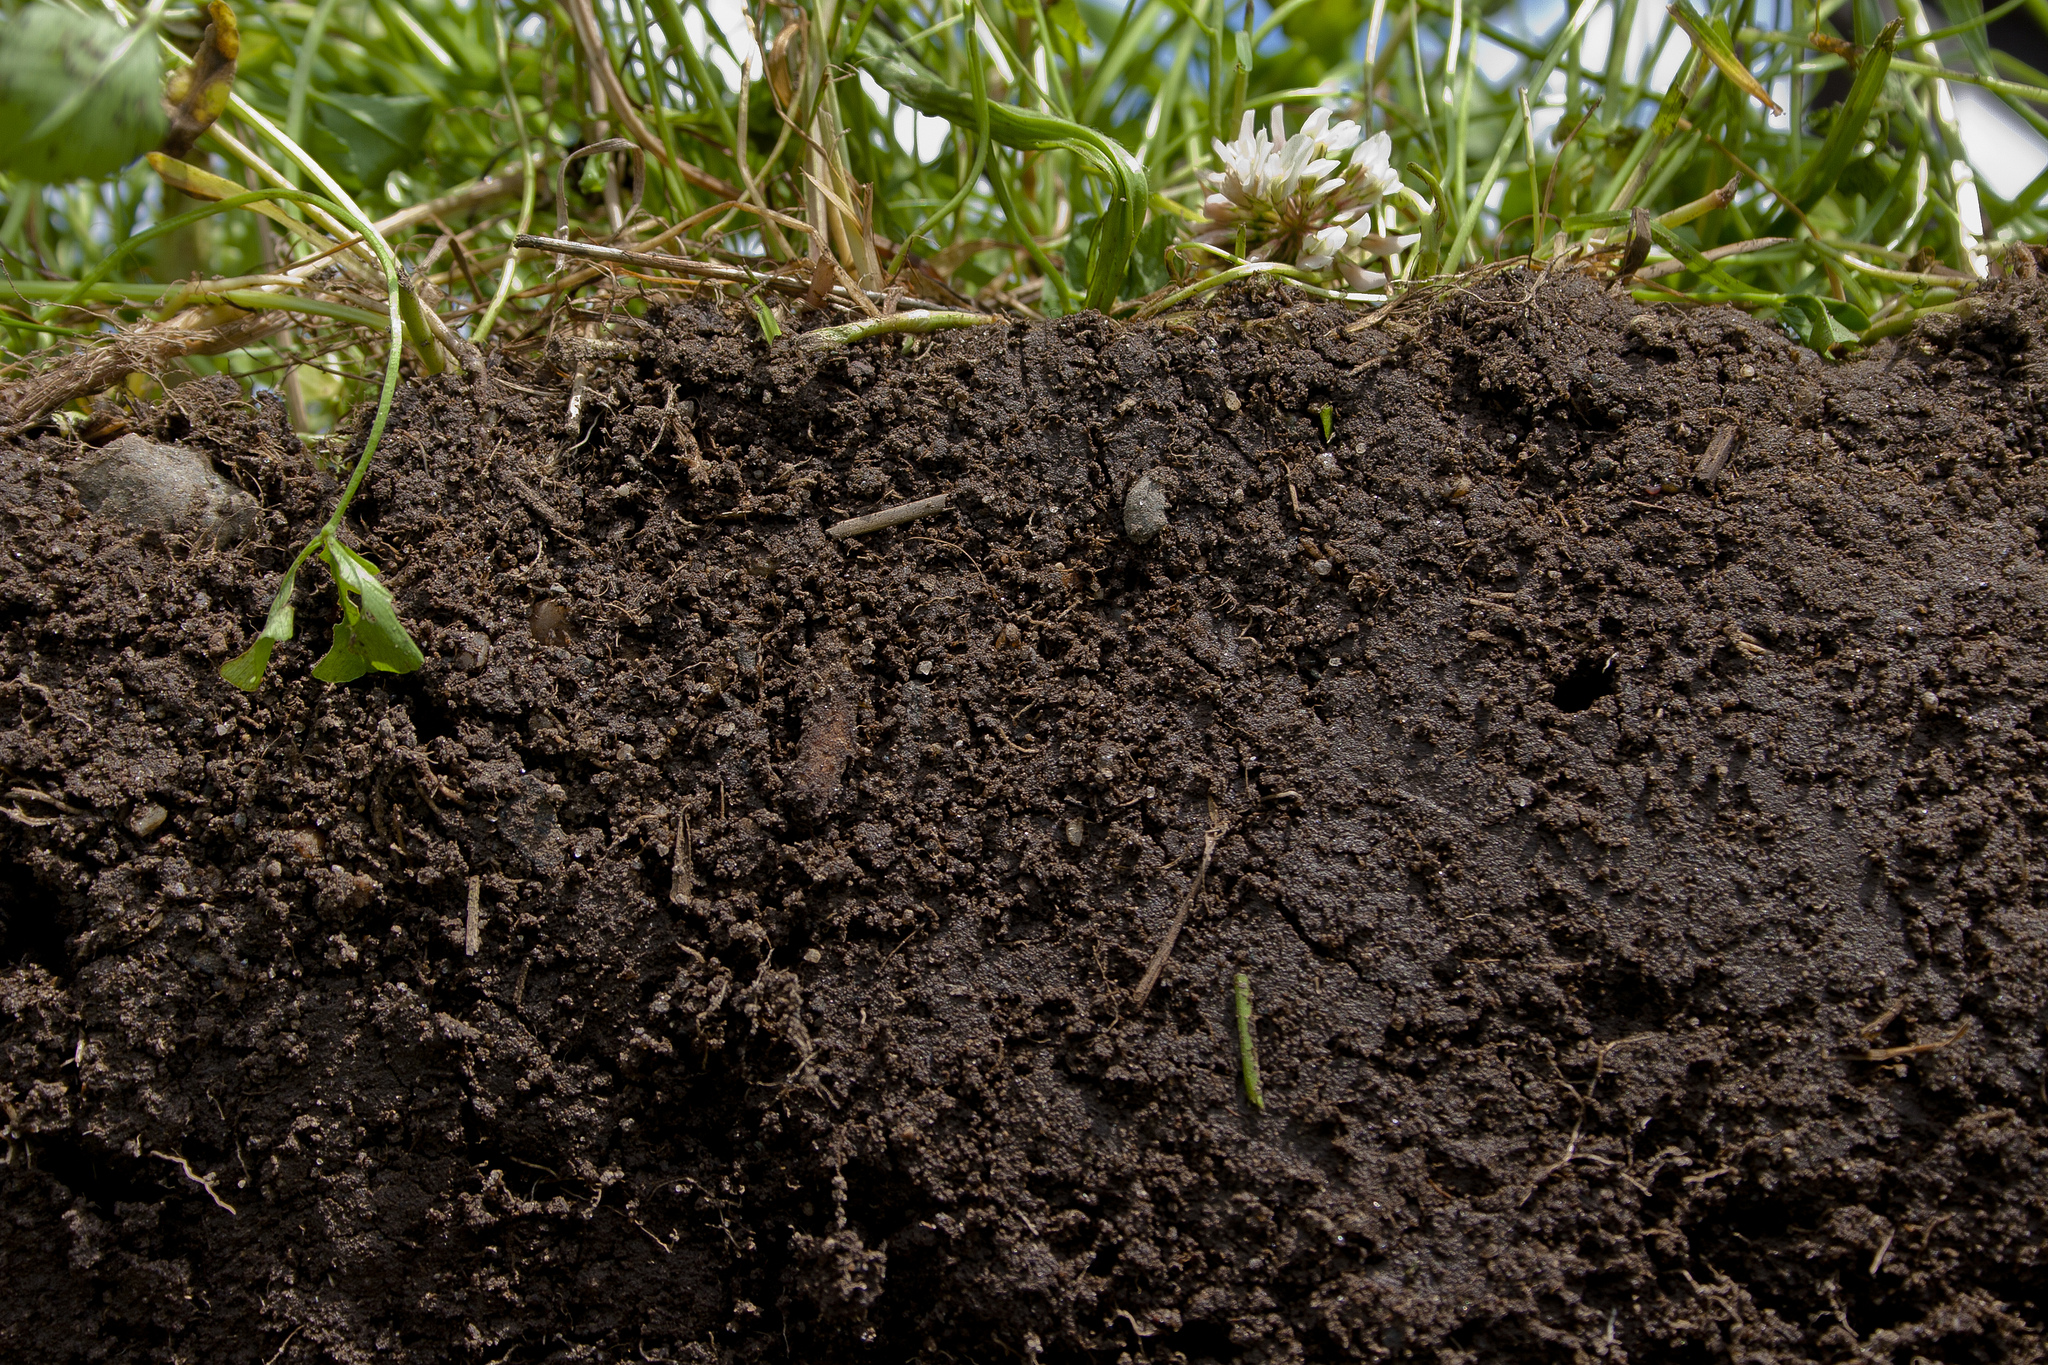 Planting a diverse blend of crops and cover crops, and not tilling, helps promote soil health. - Image Credit: Catherine Ulitsky, USDA/Flickr , CC BY